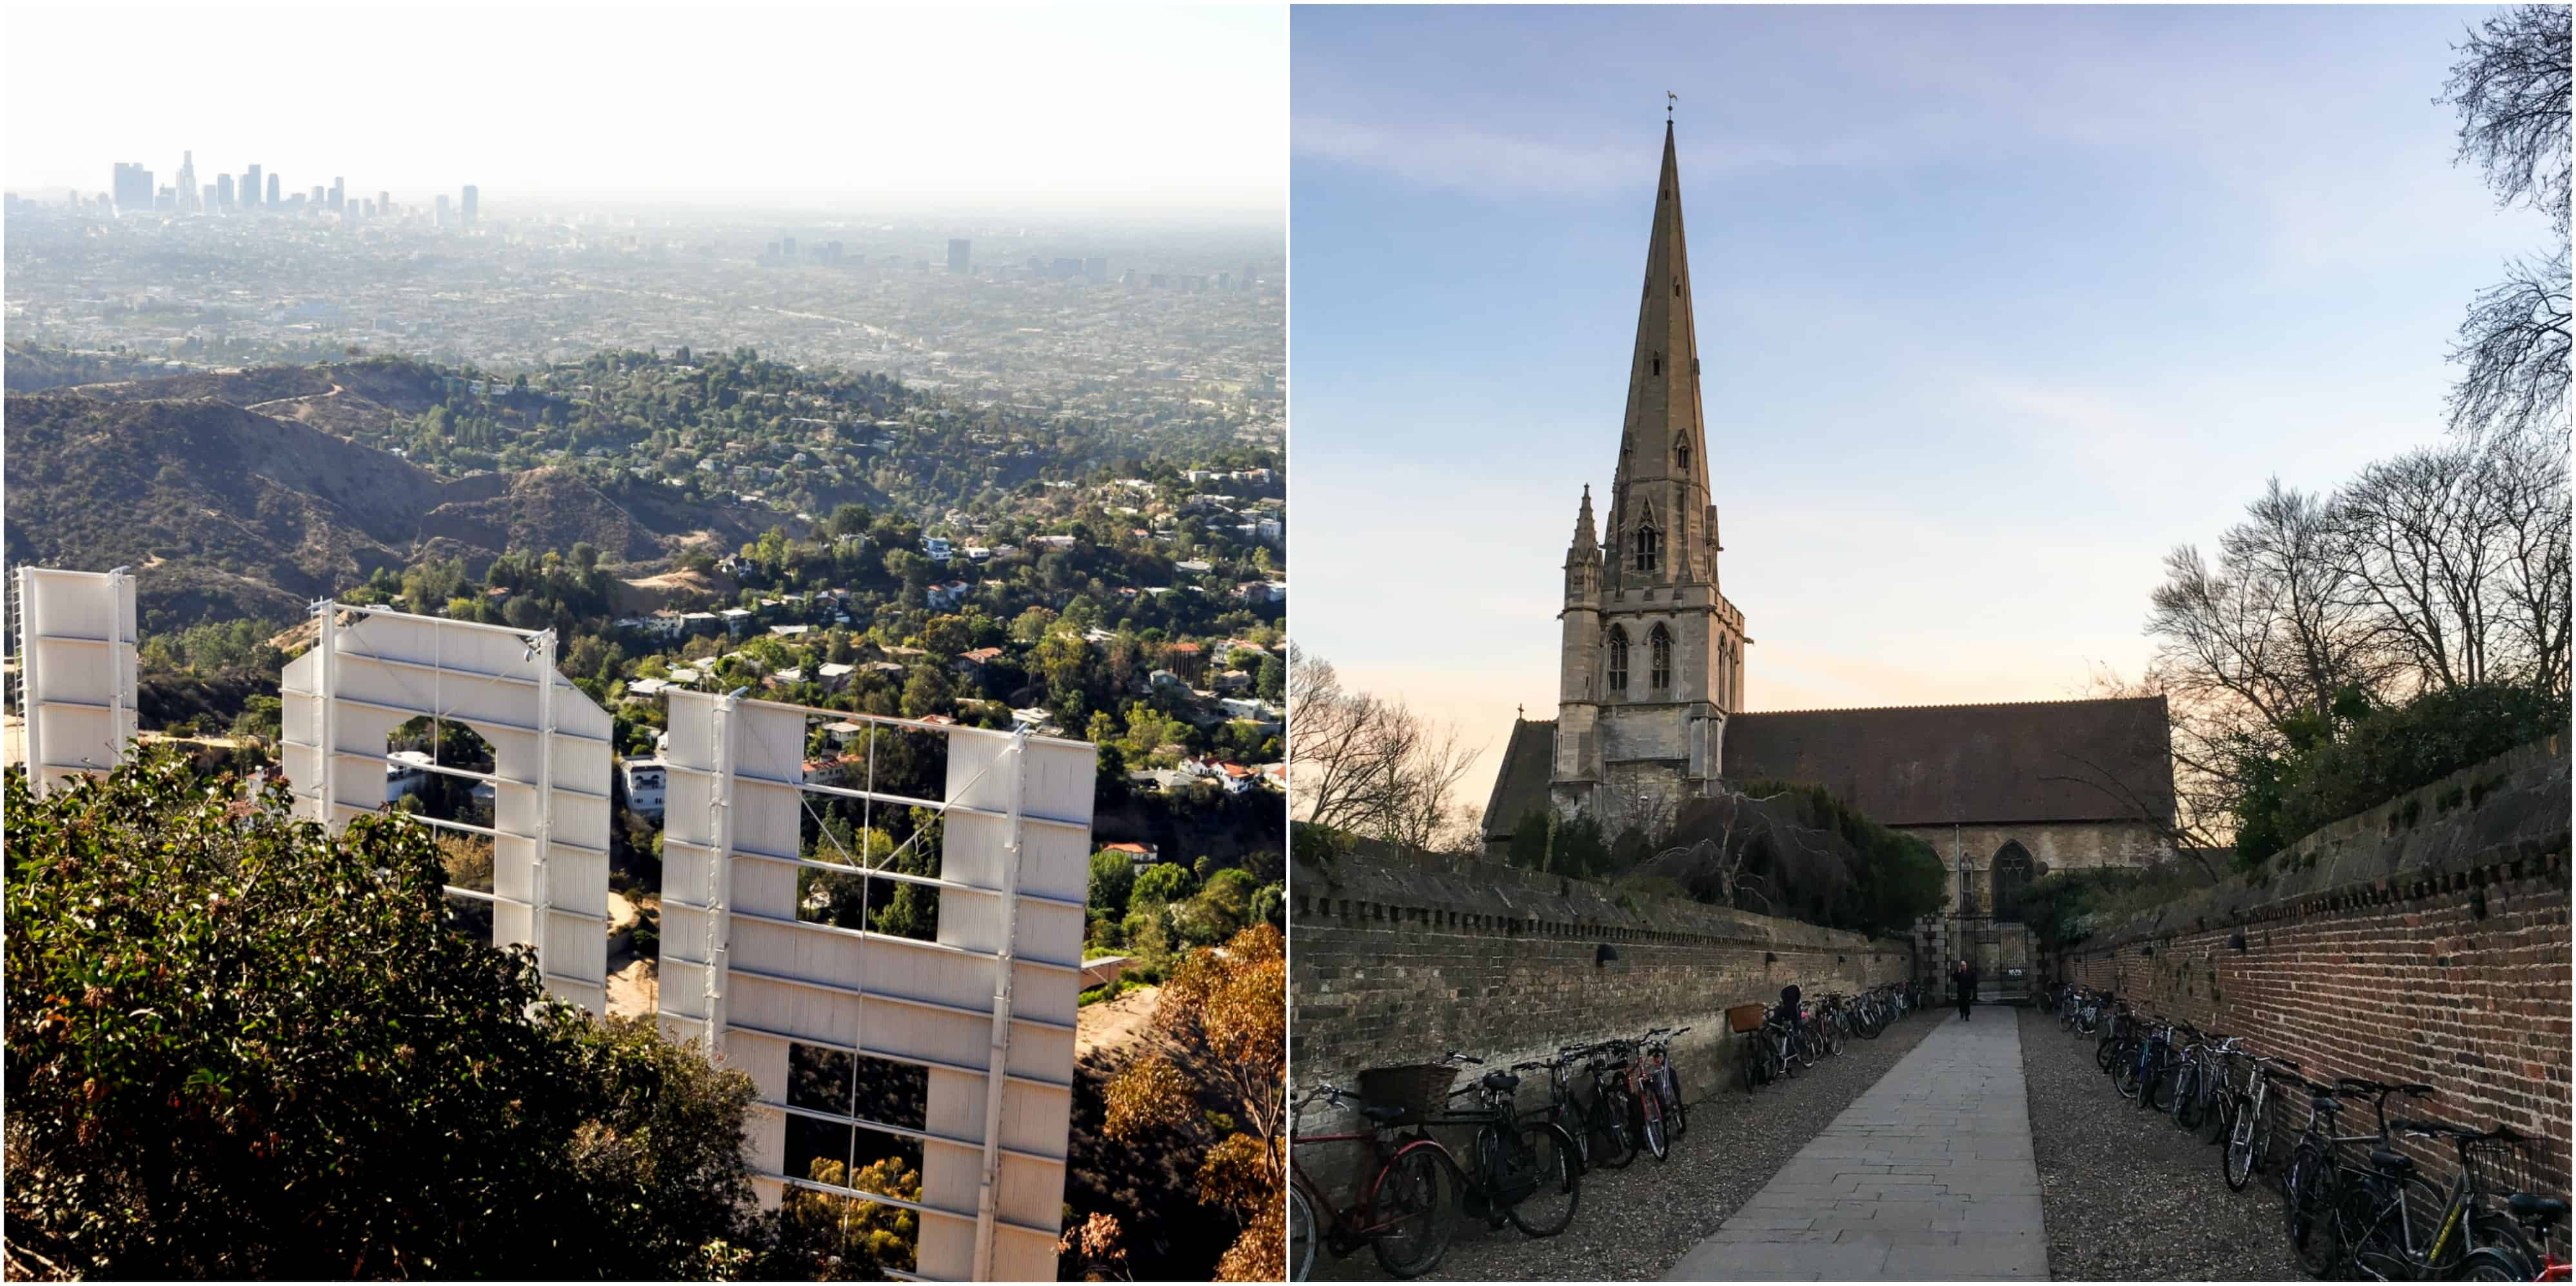 Hollywood sign and church steeple